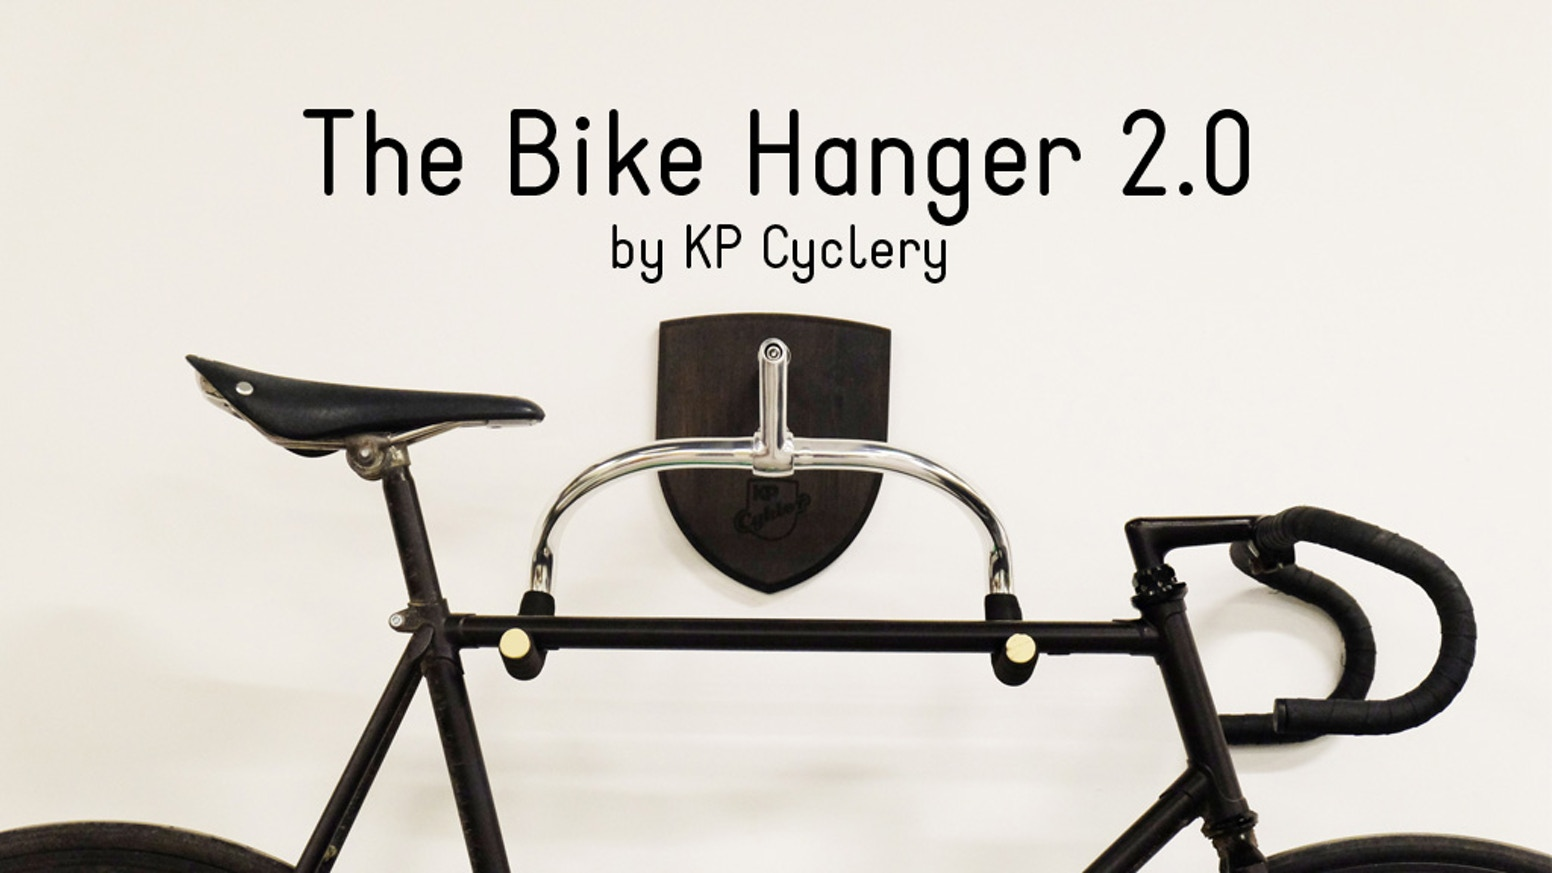 Our bicycles deserve a place in our homes, just like they have a place in our hearts. Let's make The Bike Hanger 2.0 a reality.